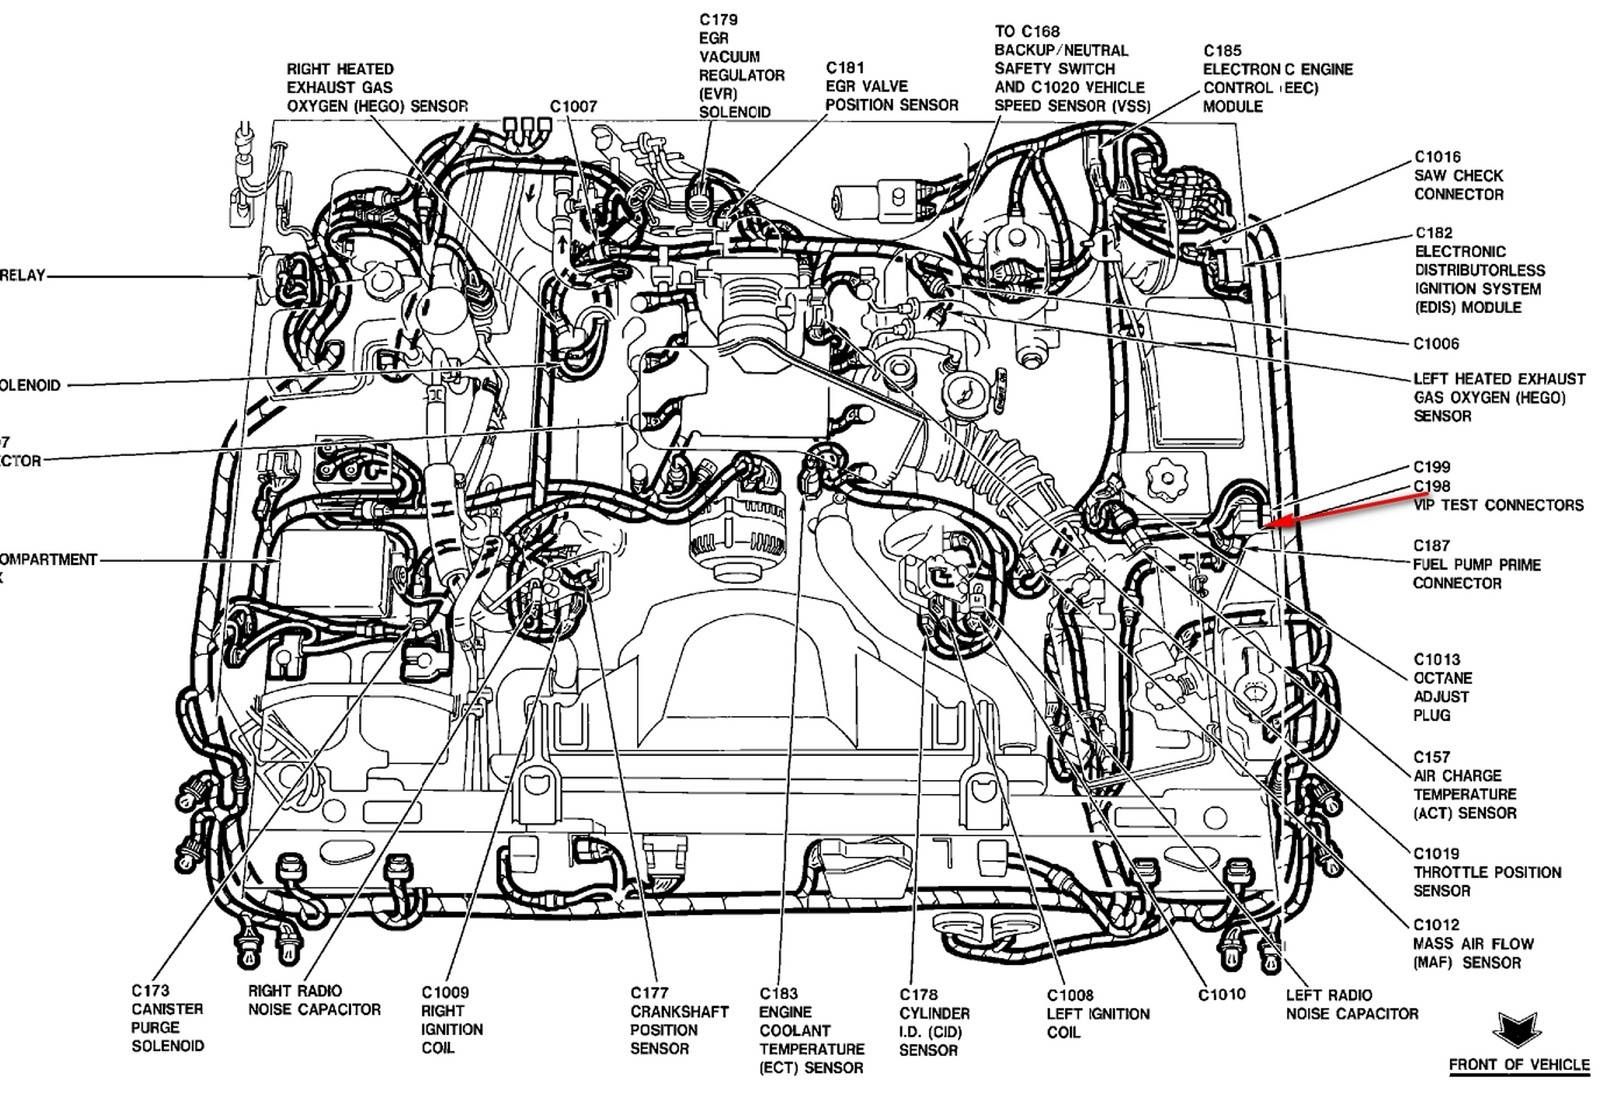 Trailer Wiring Diagram 2002 Lesabre additionally RepairGuideContent furthermore Kia Sorento 2004 Engine Diagram further Ac  pressor Clutch Diagnosis Repair additionally Honda gl1200 2084. on lincoln town car alternator wiring diagram